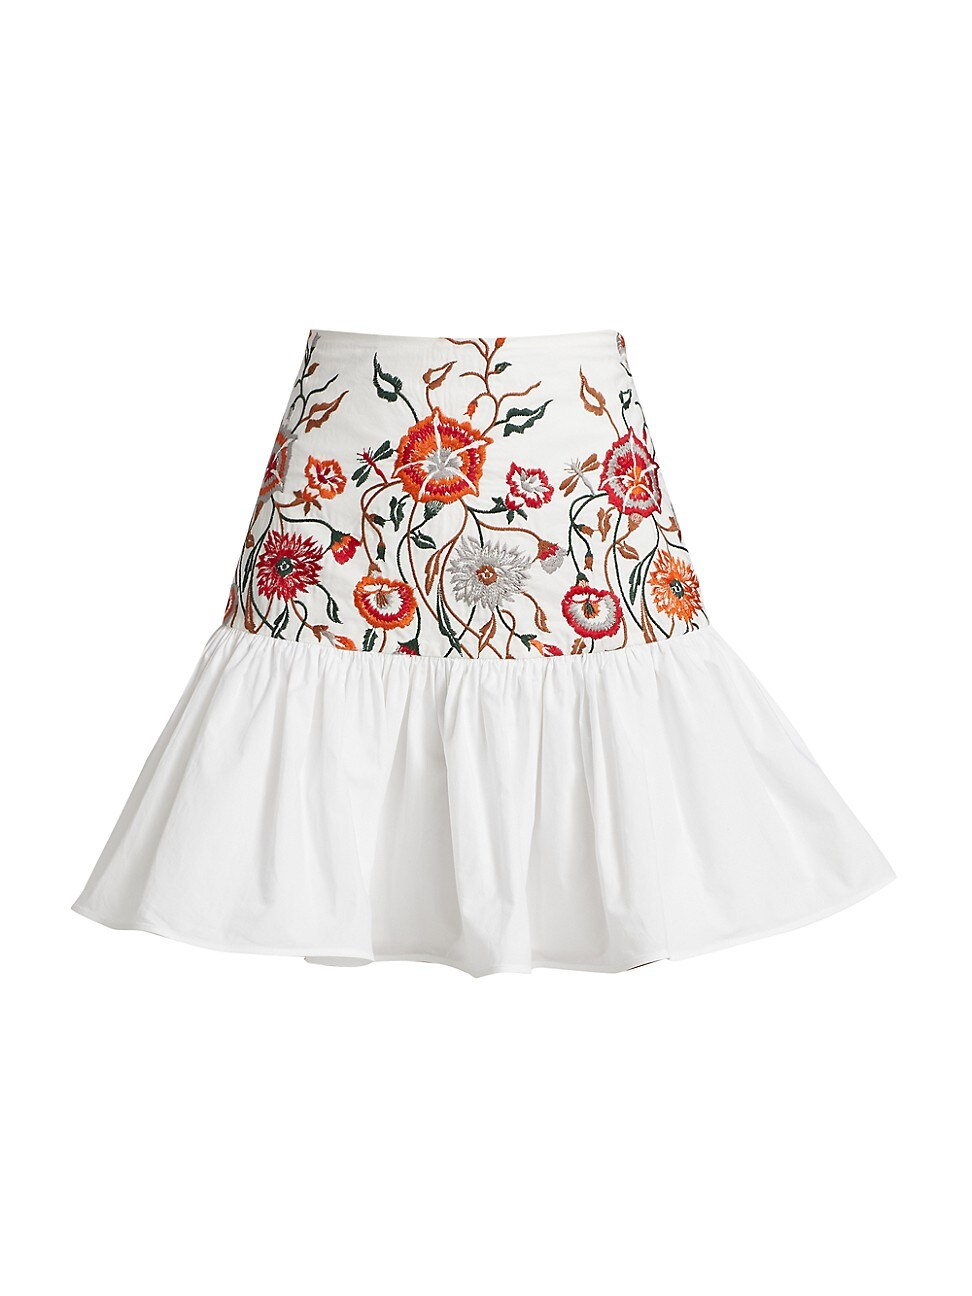 Silvia Tcherassi Cottons WOMEN'S BUCCAN FLORAL EMBROIDERED FLARE SKIRT